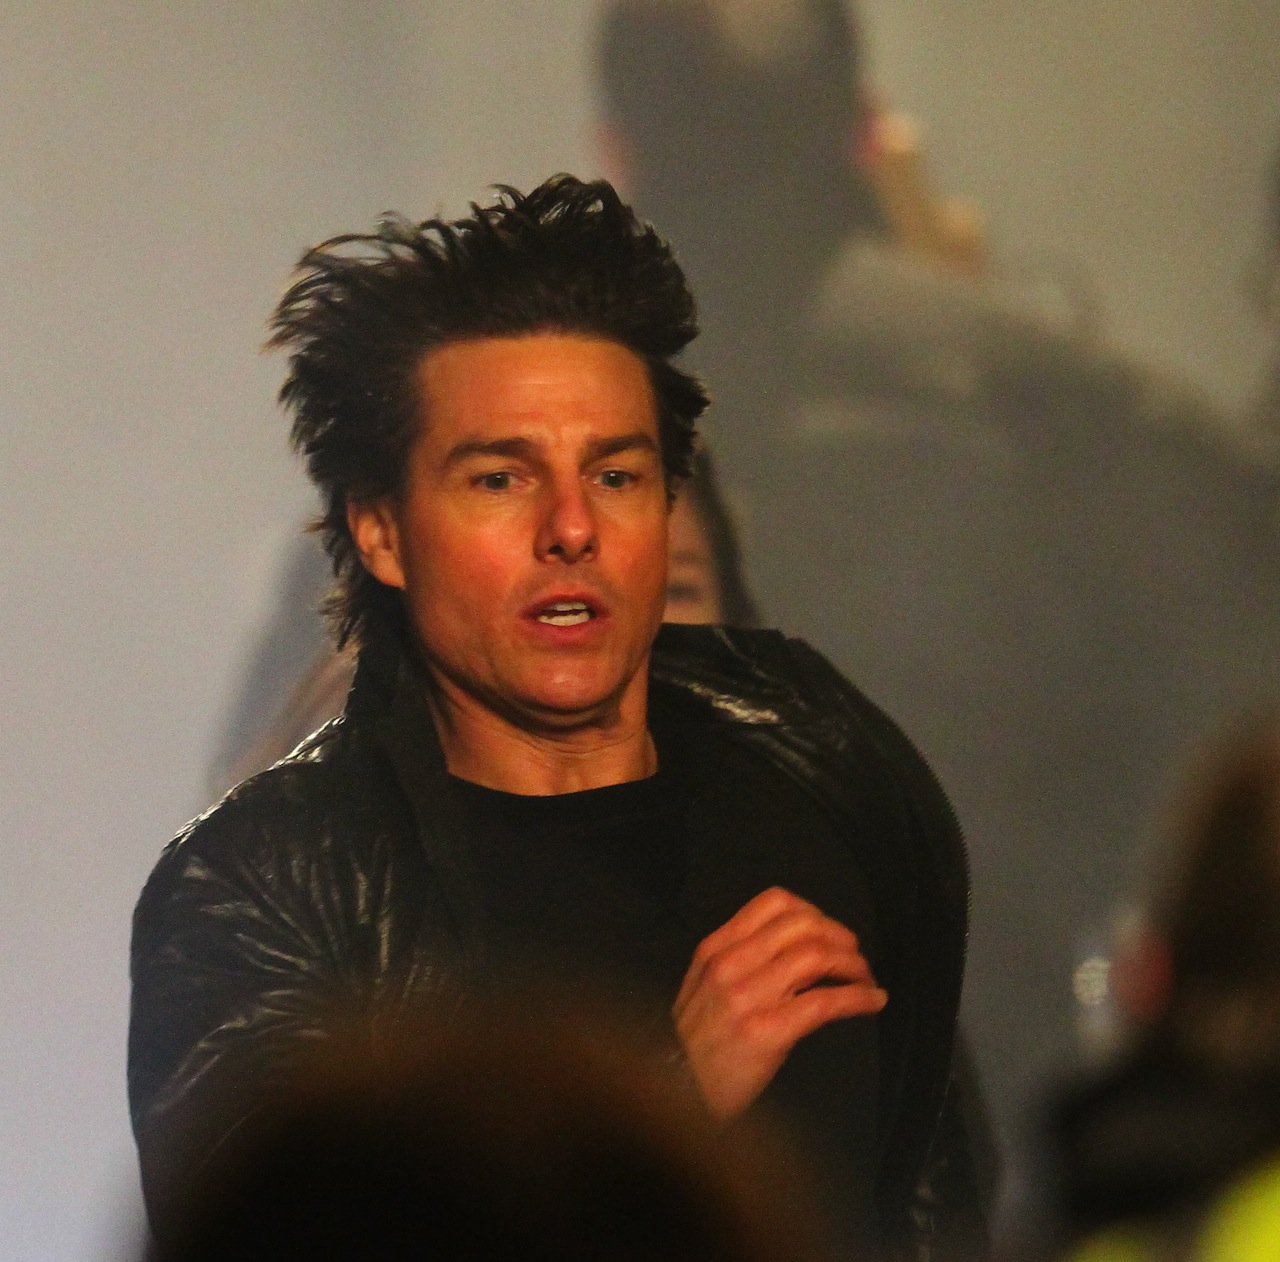 Tom Cruise films scenes for 'Mission: Impossible 5' in London